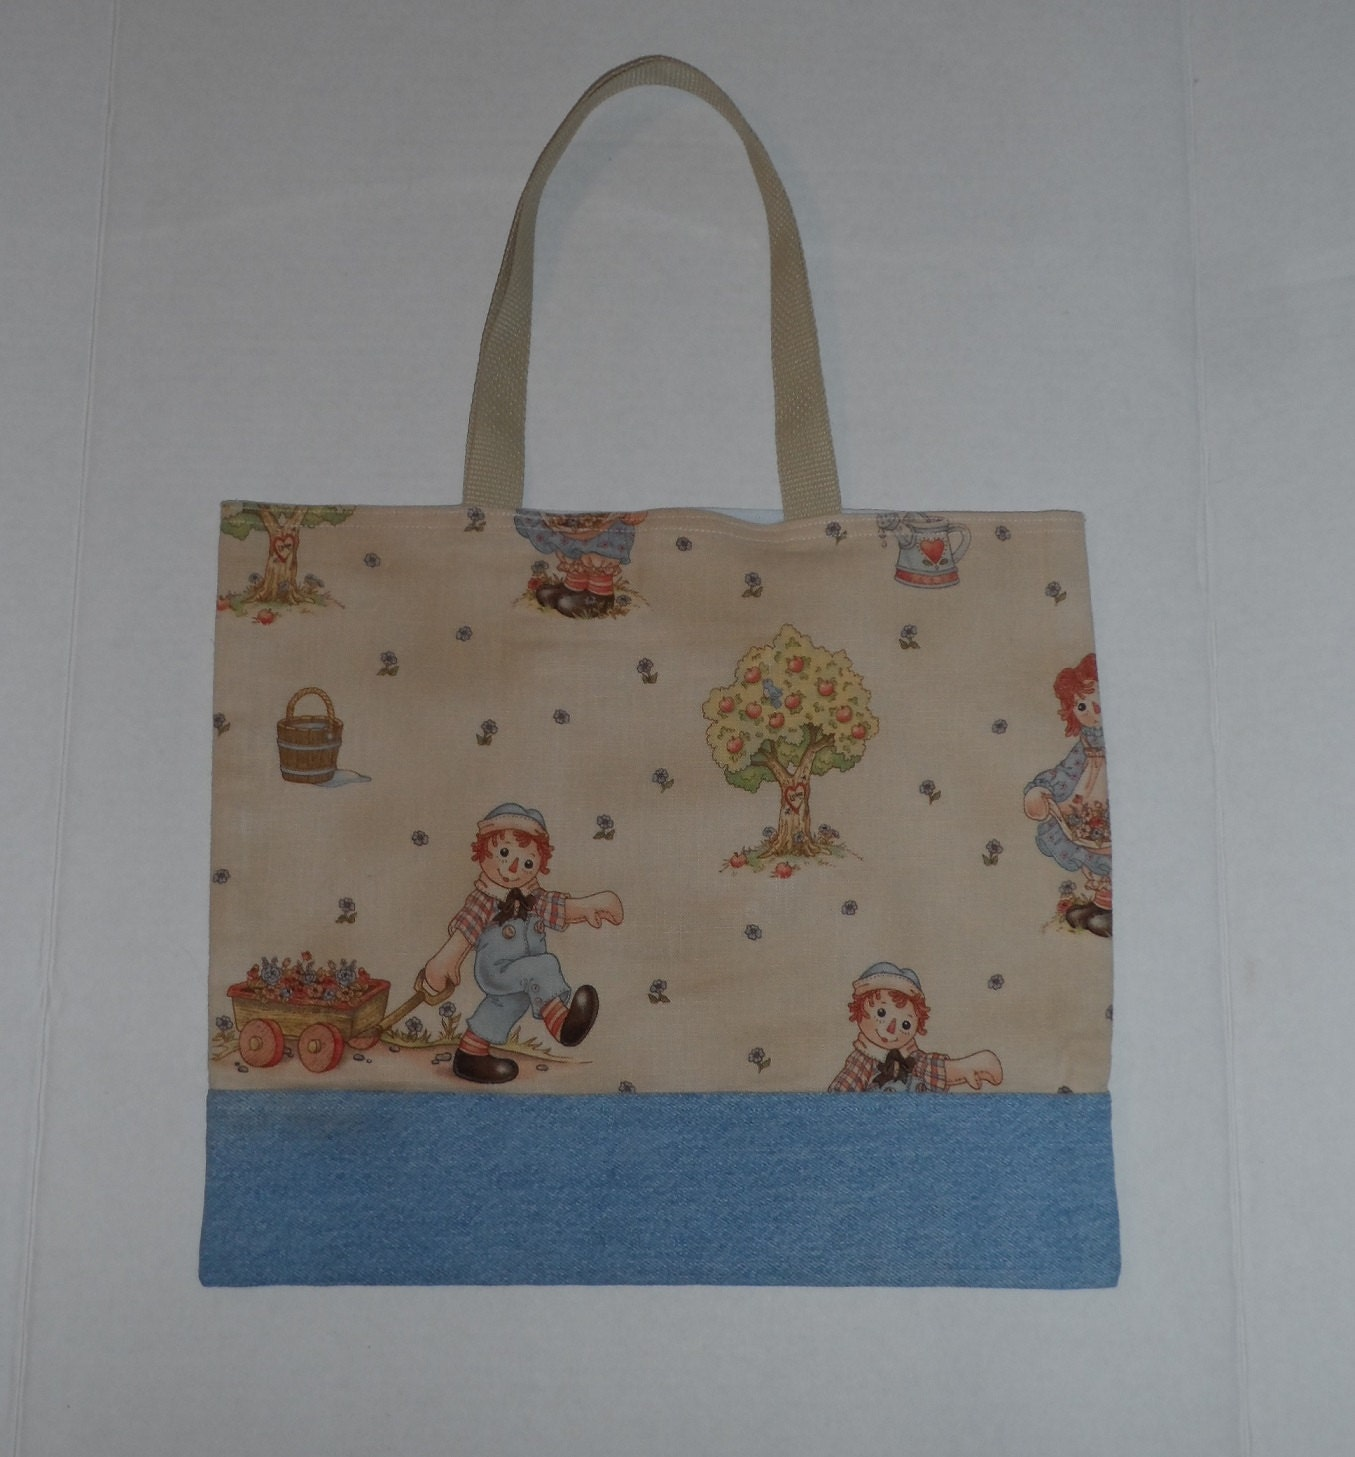 raggedy ann andy japanese fabric book ipad tote bag with